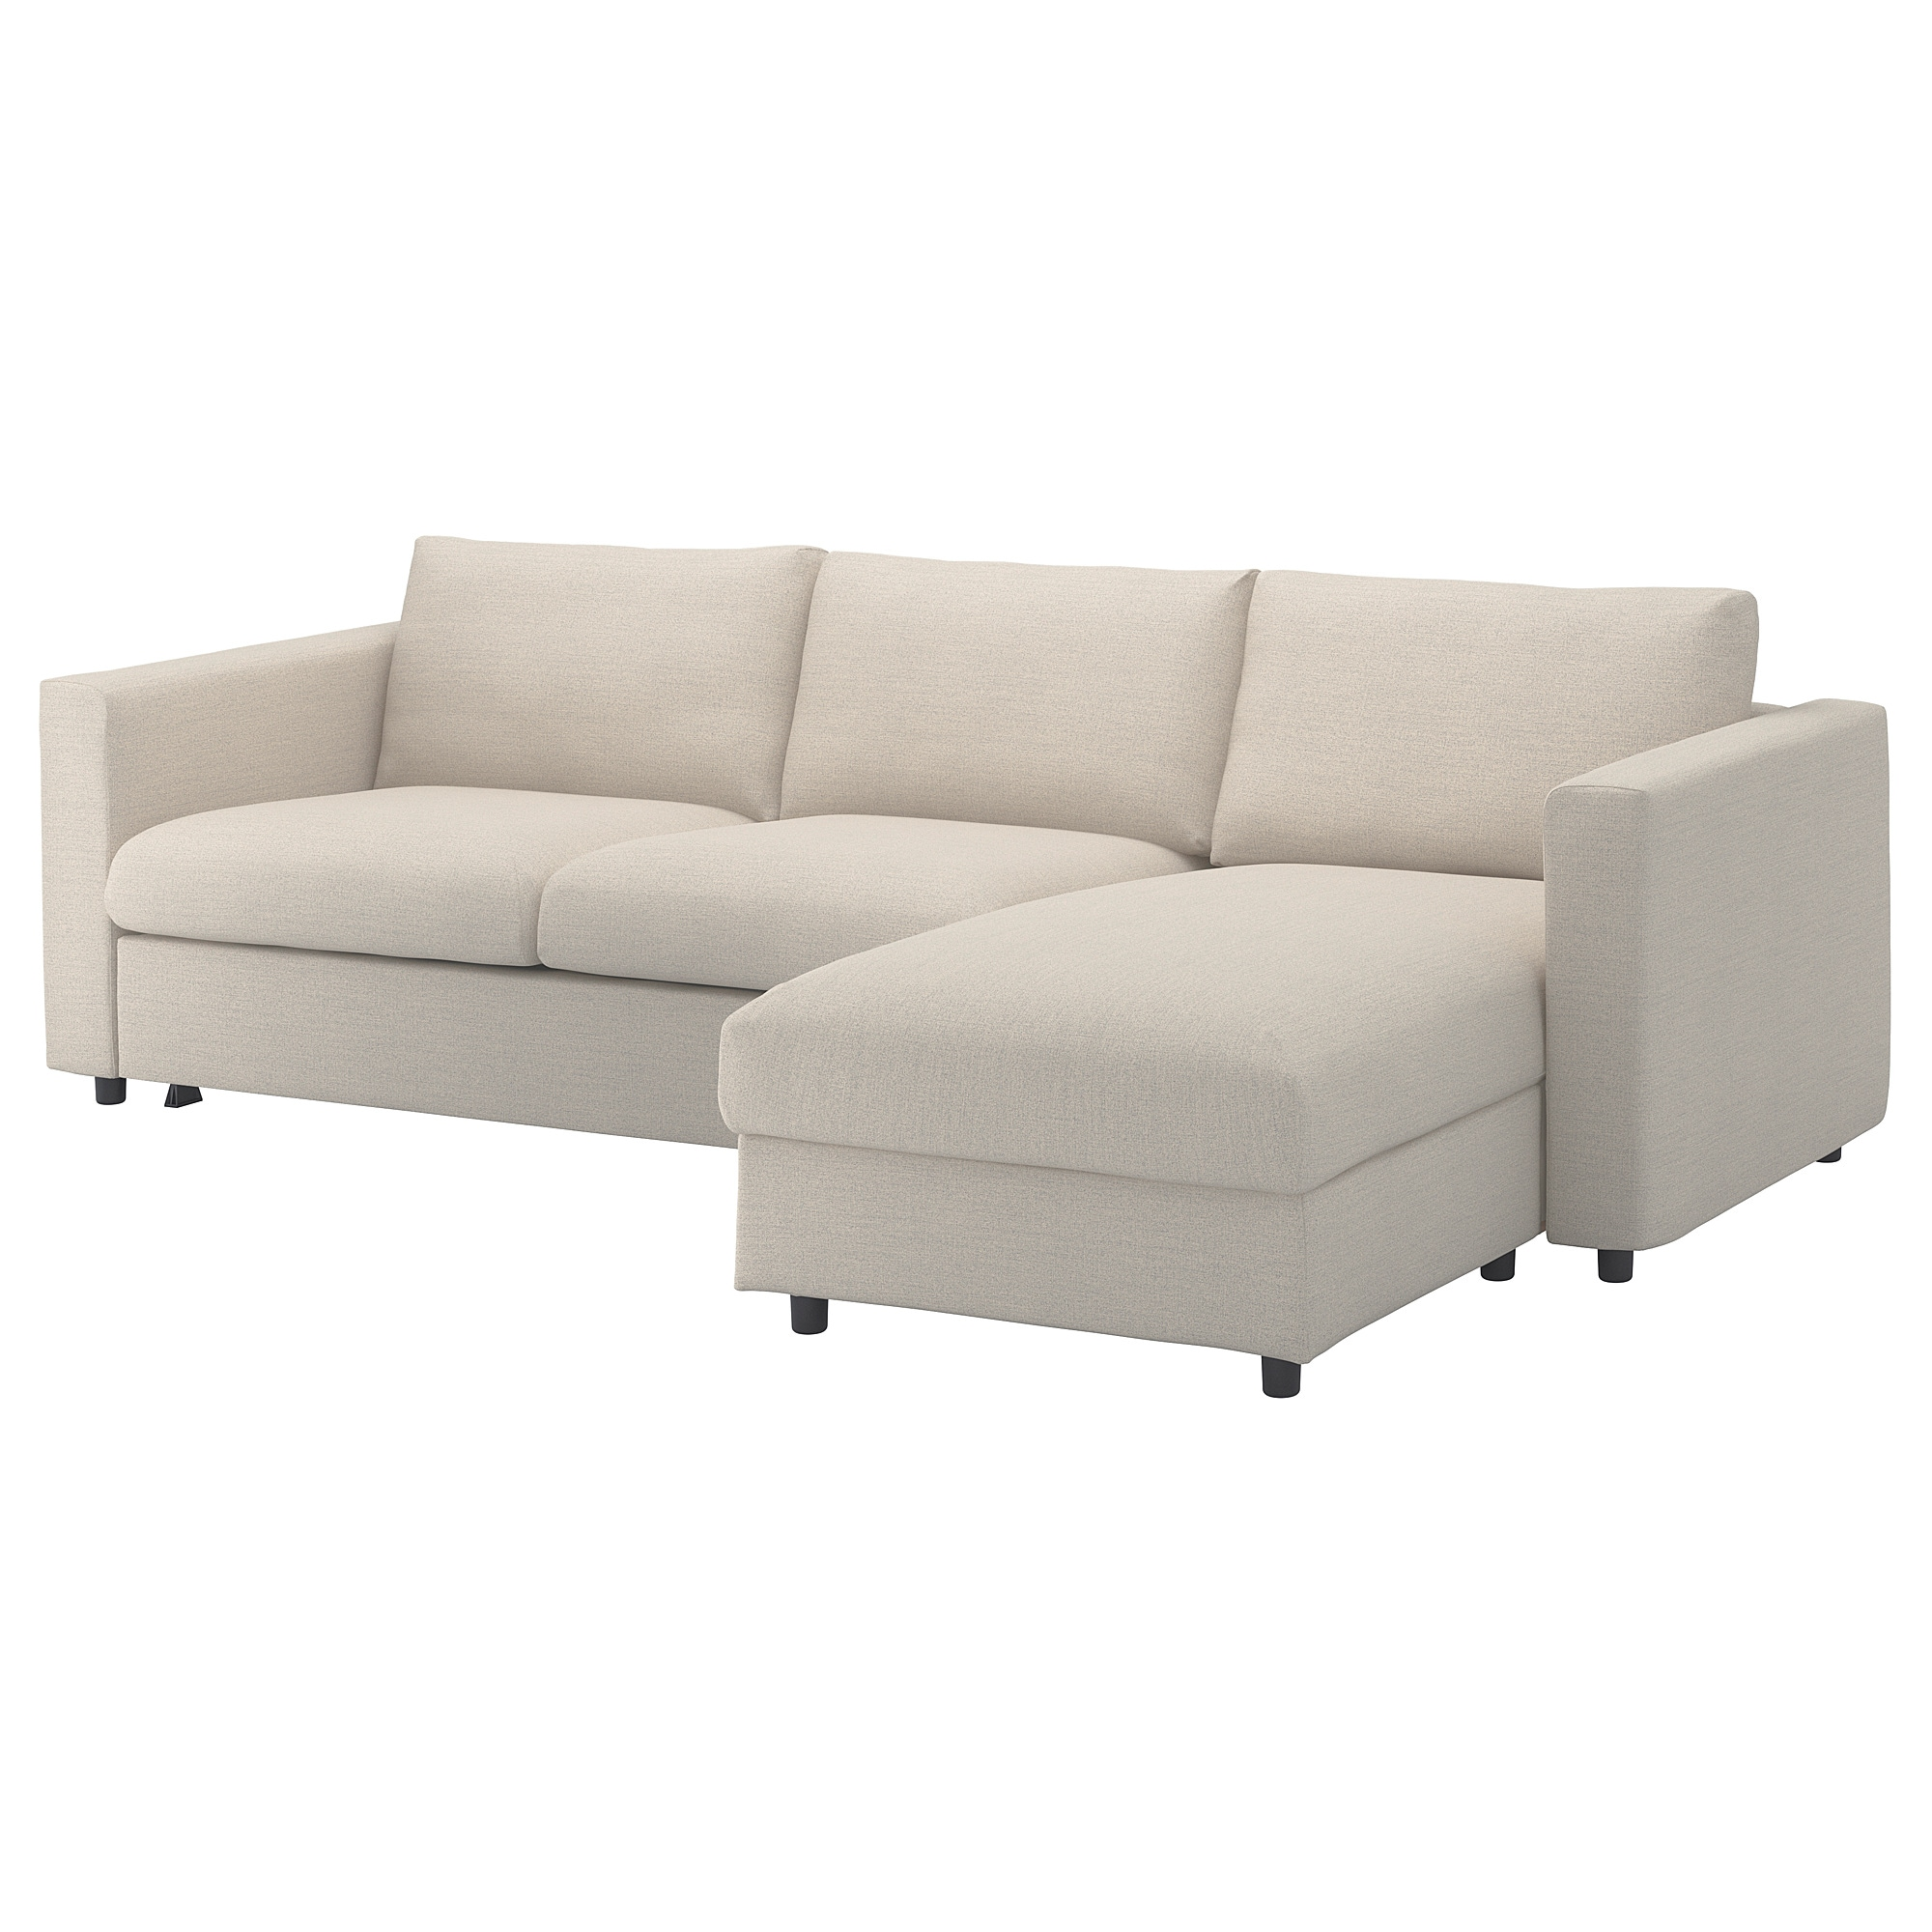 Sleeper sofa VIMLE with chaise, Gunnared beige